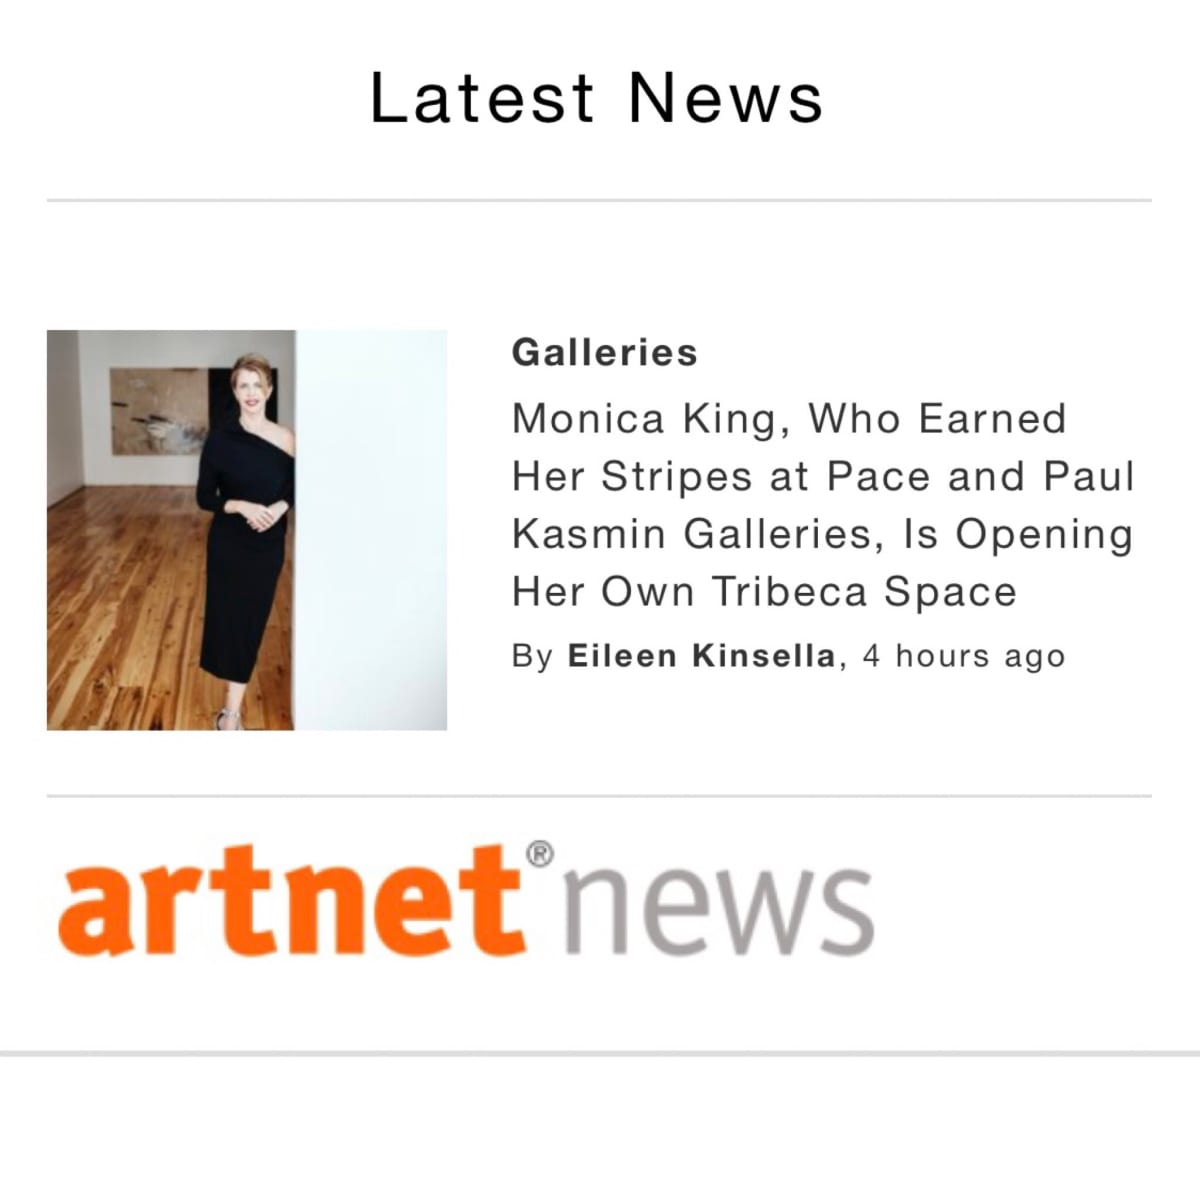 Monica King, Who Earned Her Stripes at Pace and Paul Kasmin Galleries, Is Opening Her Own Tribeca Space